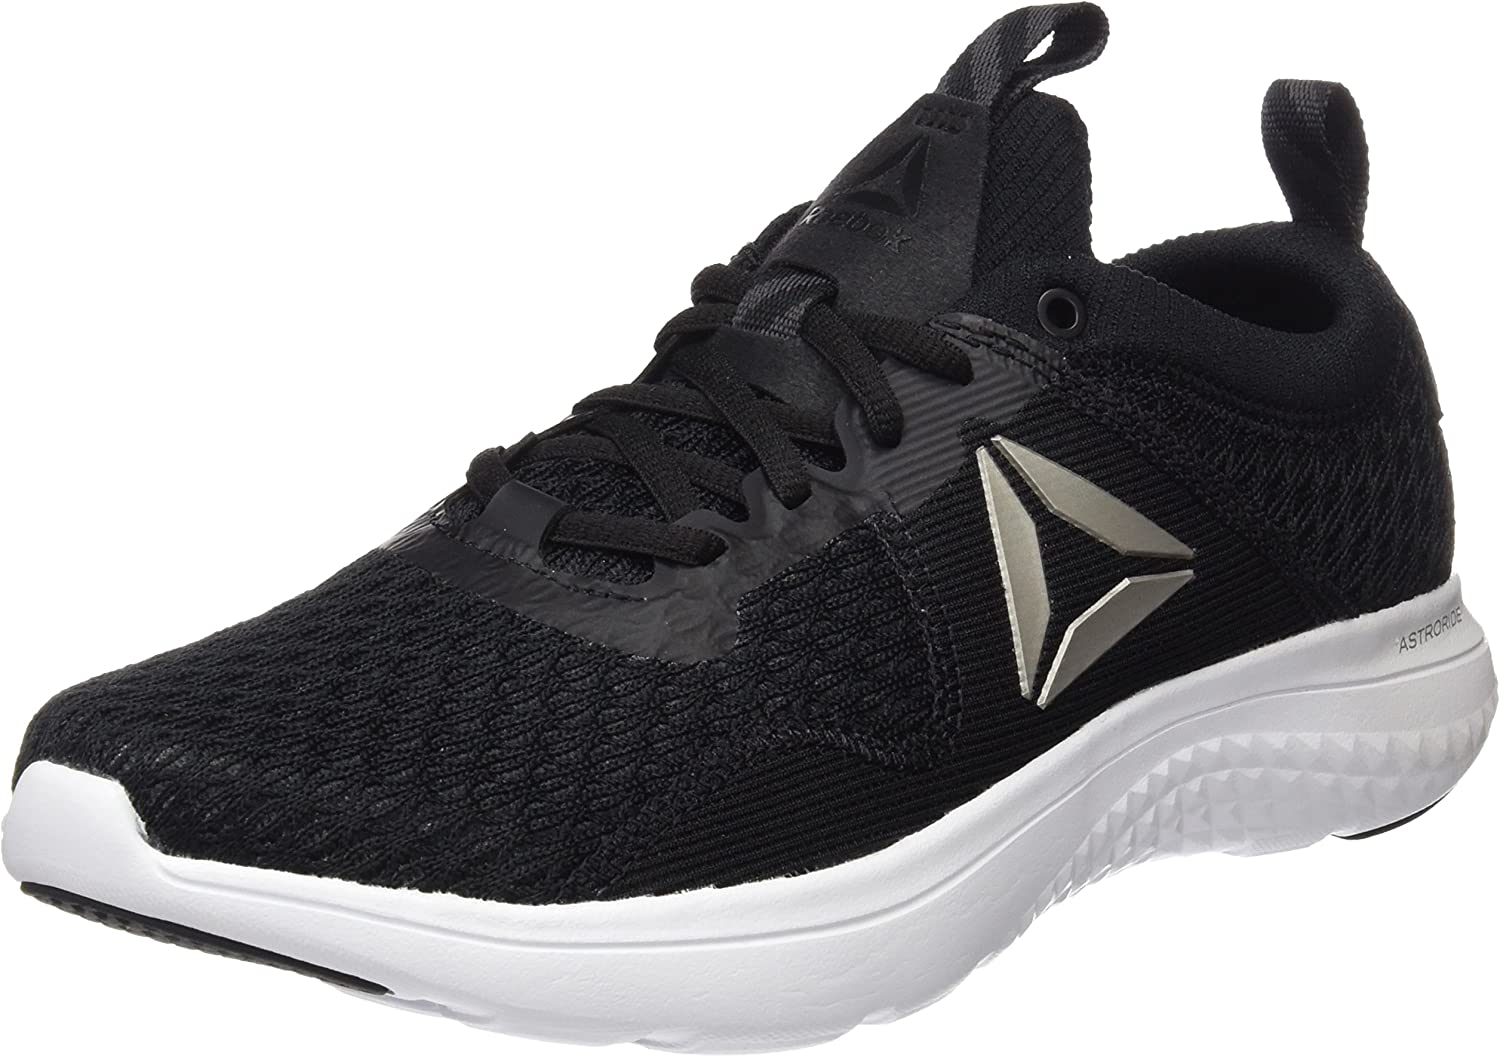 Reebok Men's Astroride Run Fire shoes